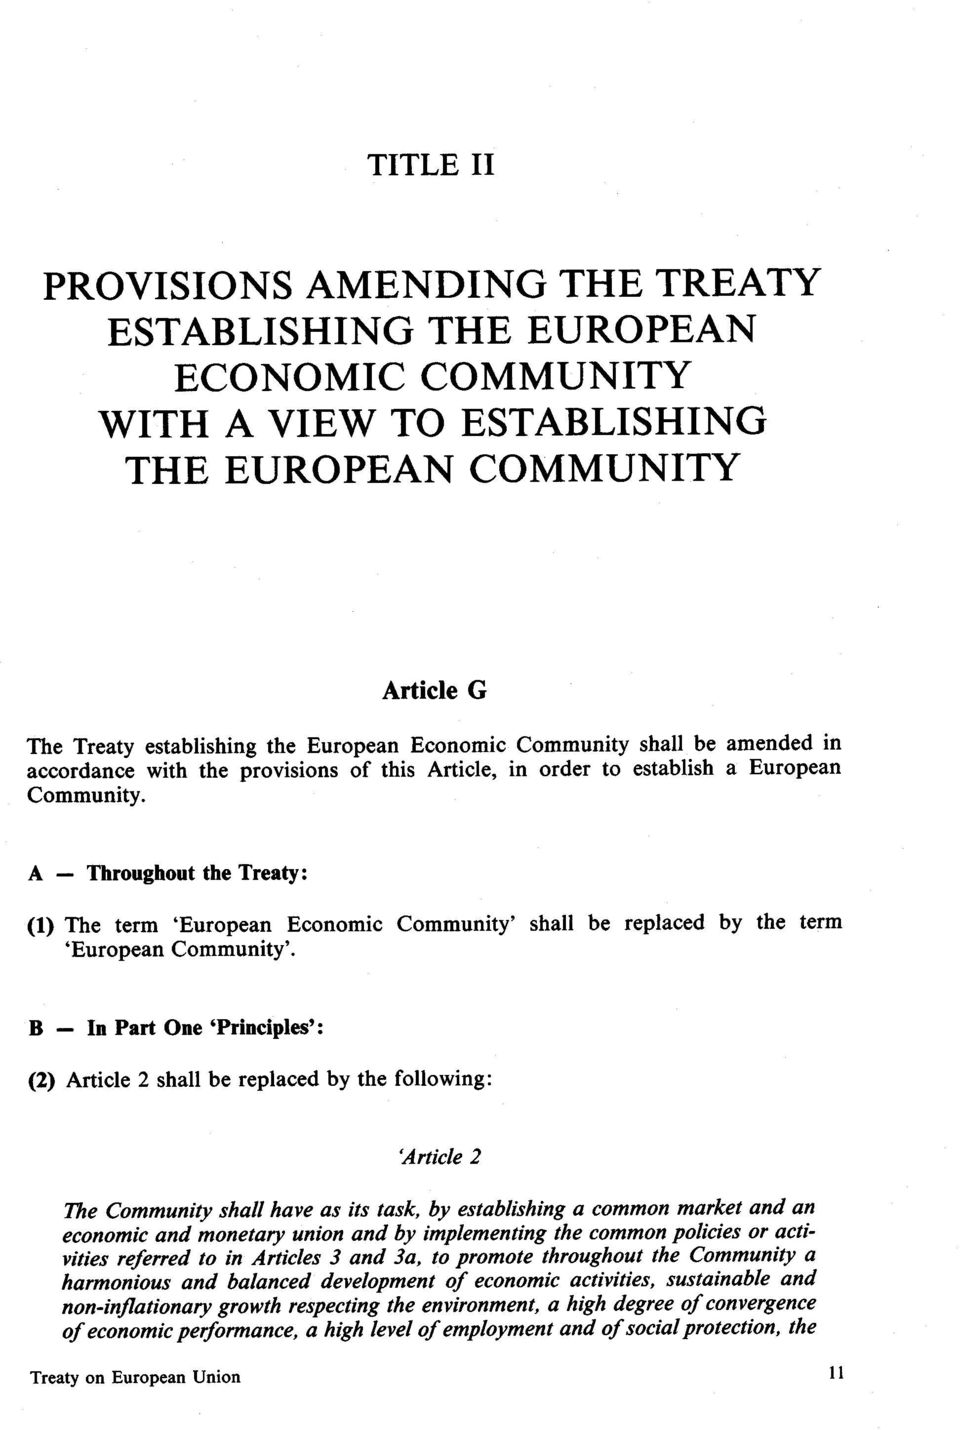 A - Throughouthe Treaty: (1) The term 'European Economic Community' shall be replaced by the 'European Community'.